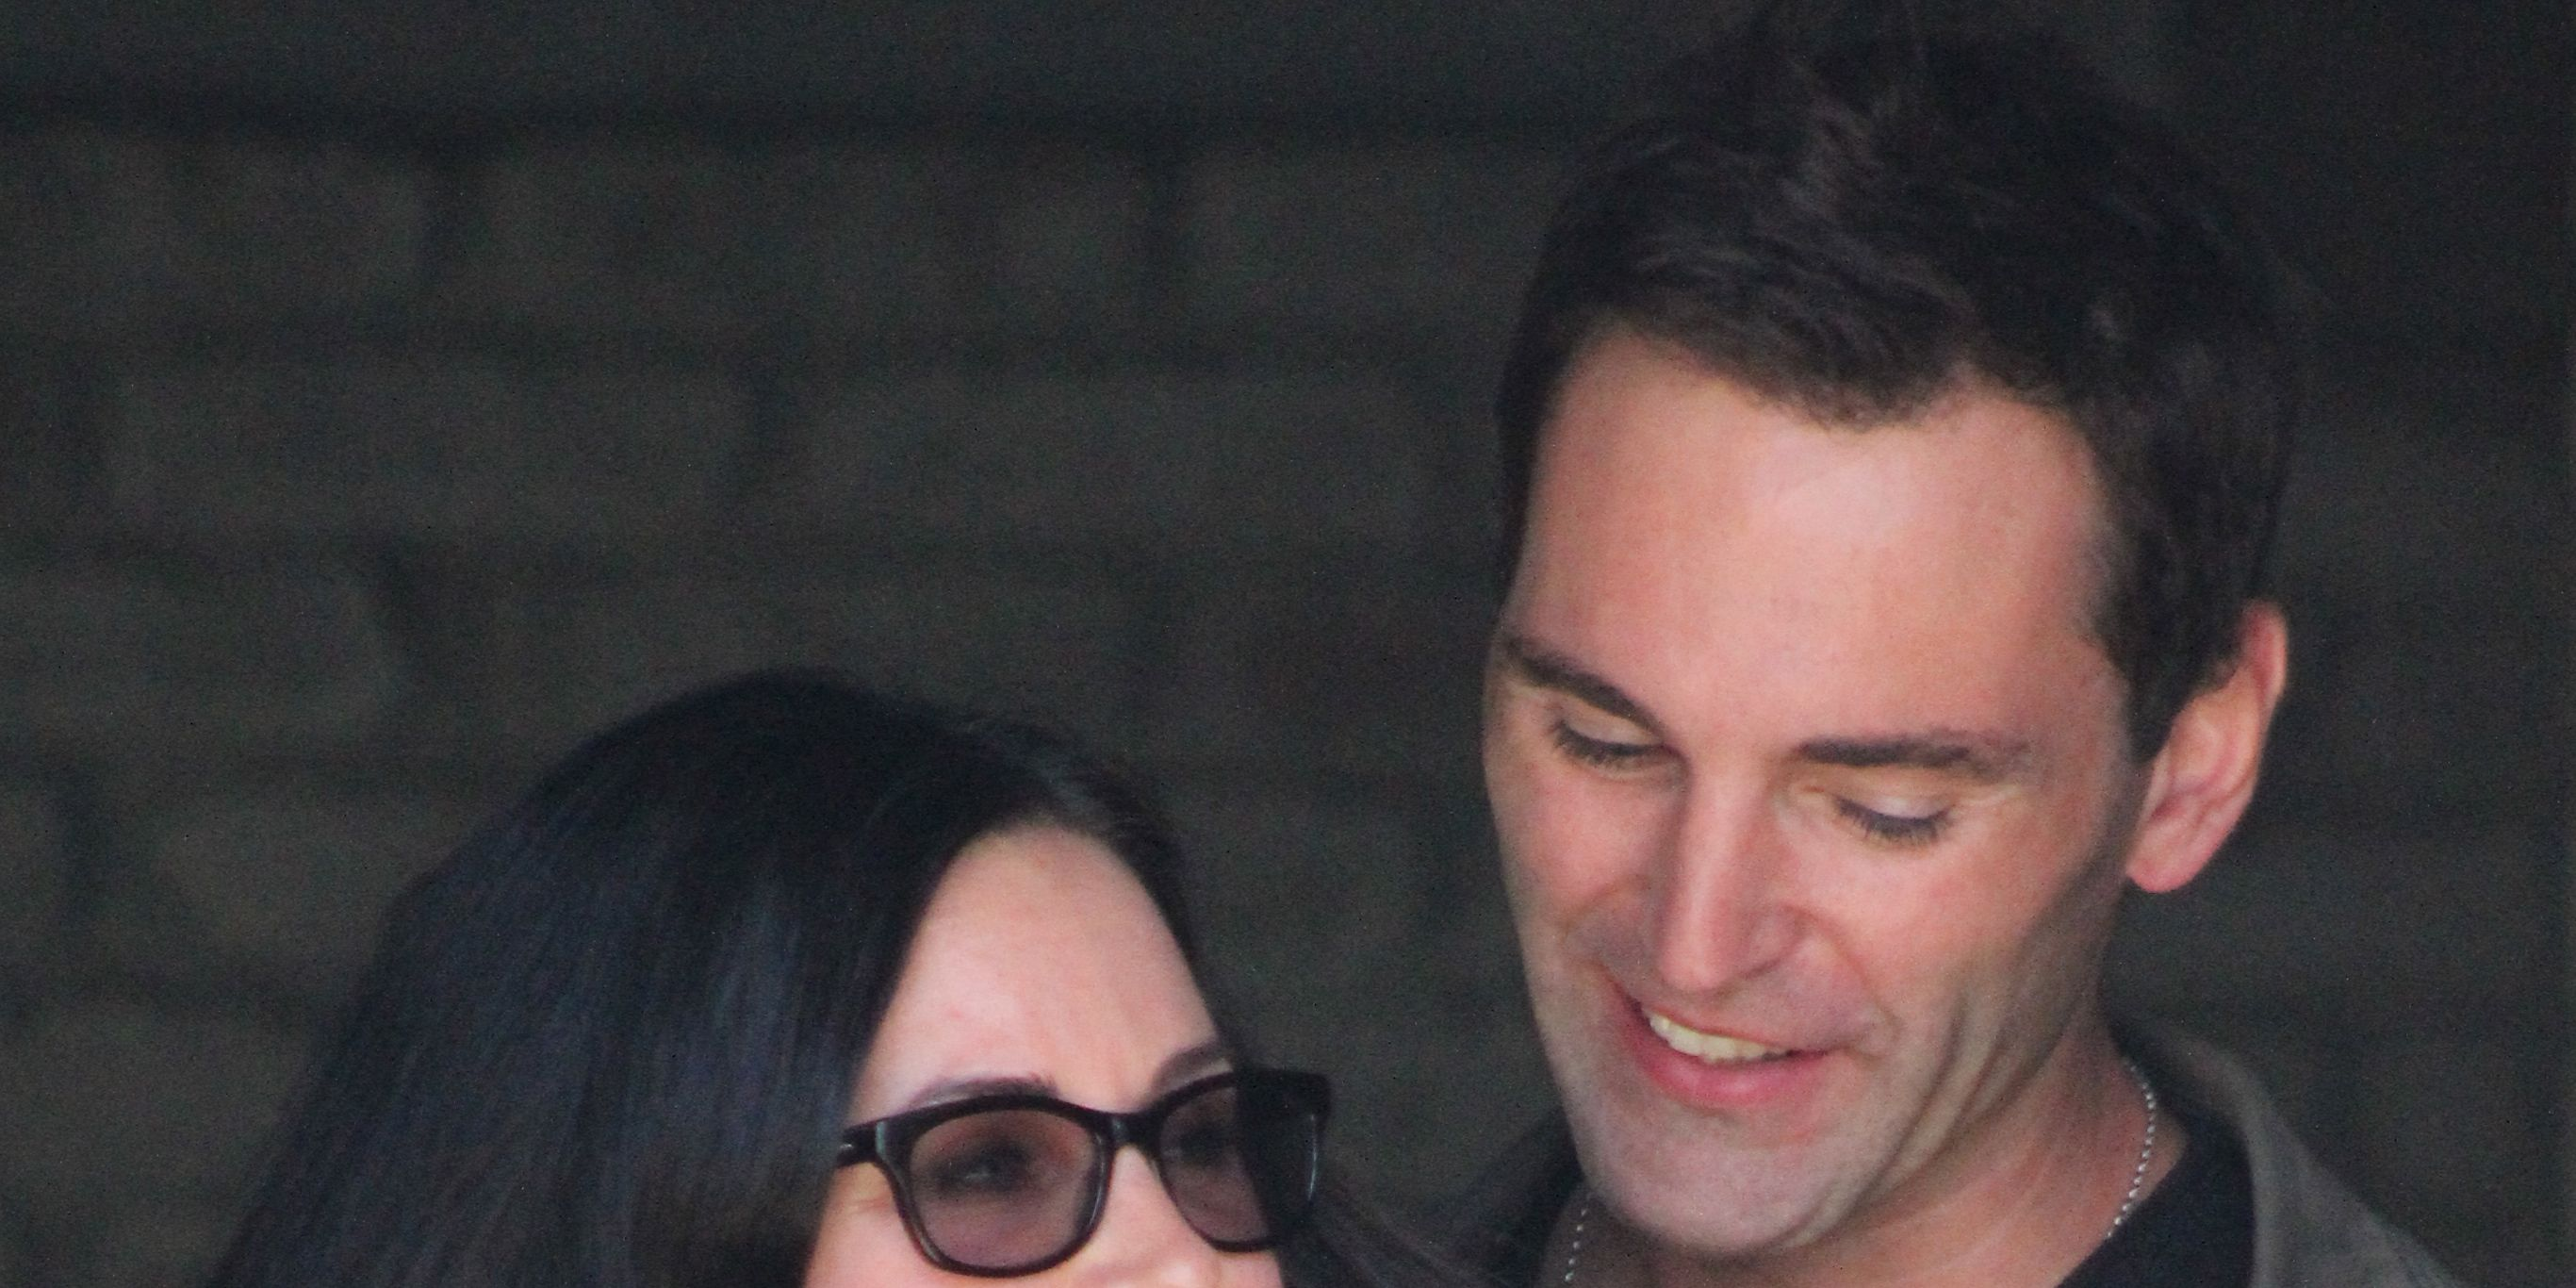 Courtney Cox and Johnny McDaid attend a Memorial Day a event in Malibu